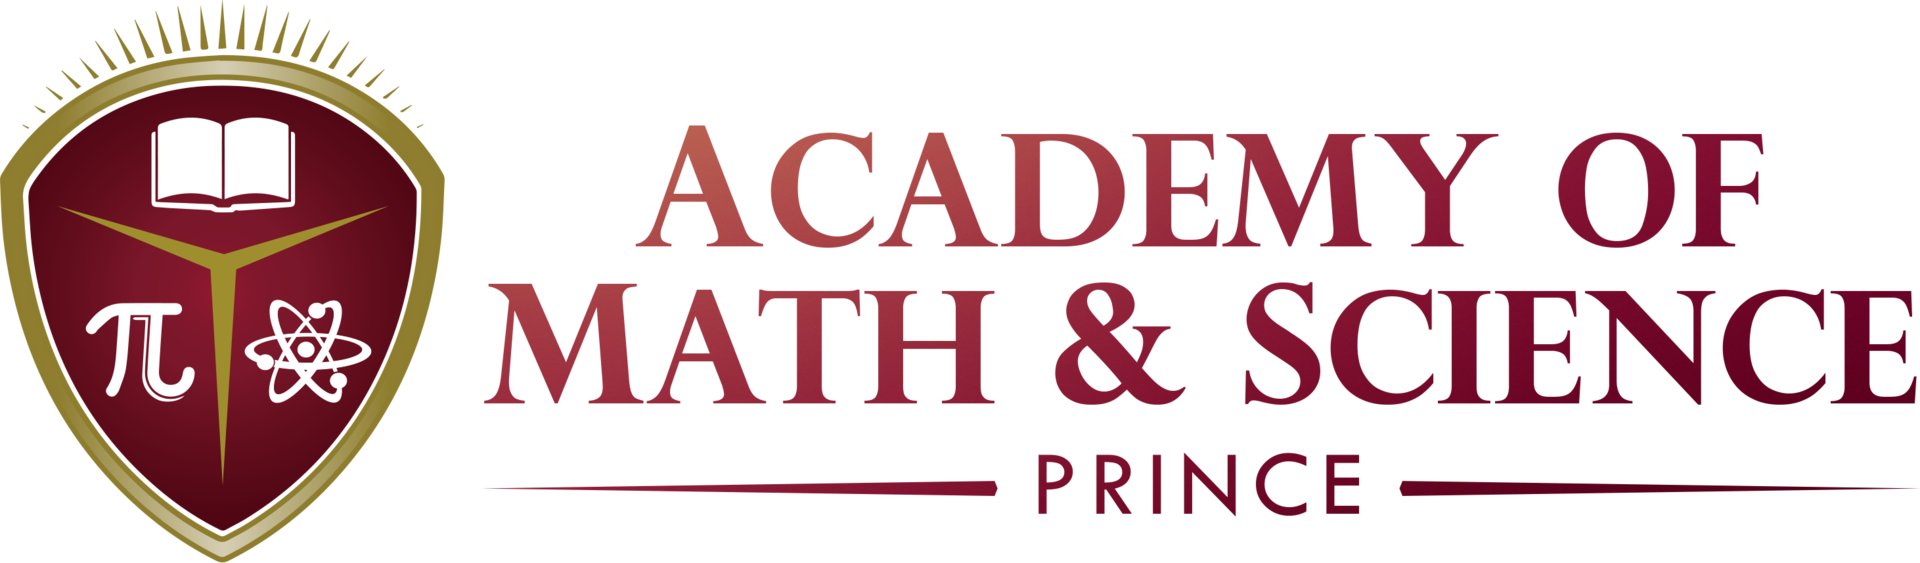 Tucson Charter School | Academy of Math & Science - Prince